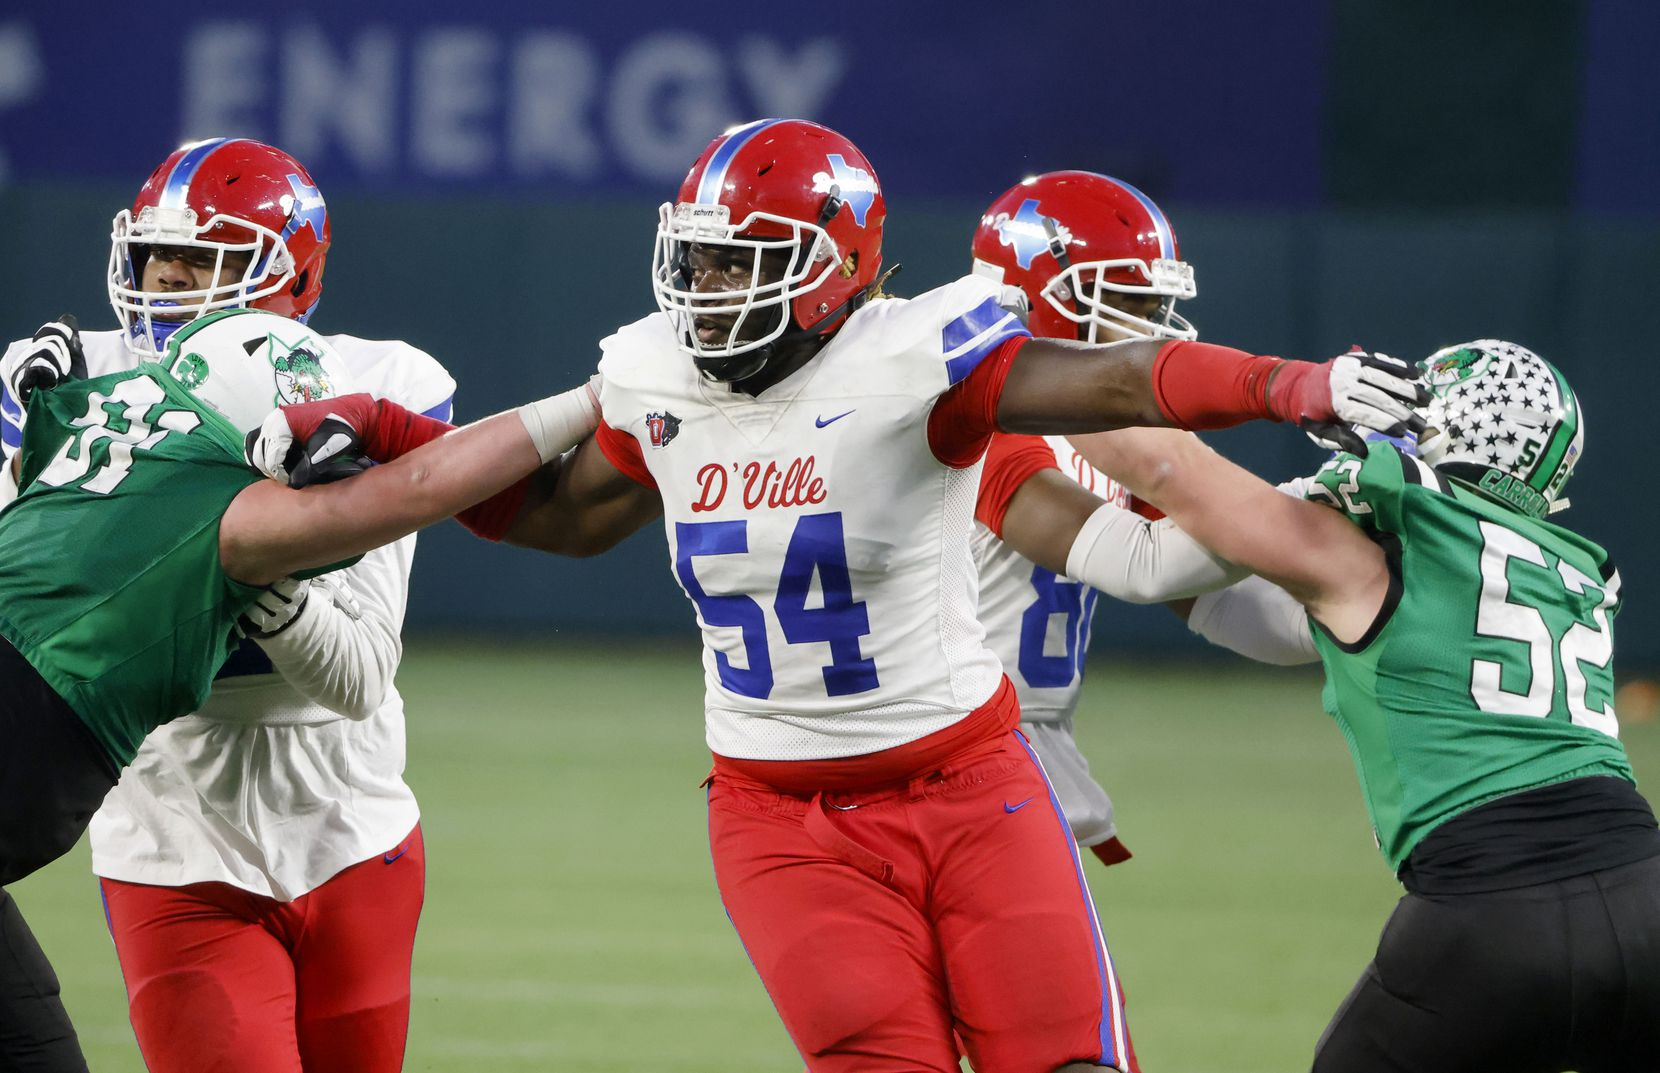 Duncanville's Savion Byrd (54) tries to get past Southlake players during the Class 6A Division I state high school football semifinal in Arlington, Texas on Jan. 9, 2020. (Michael Ainsworth)